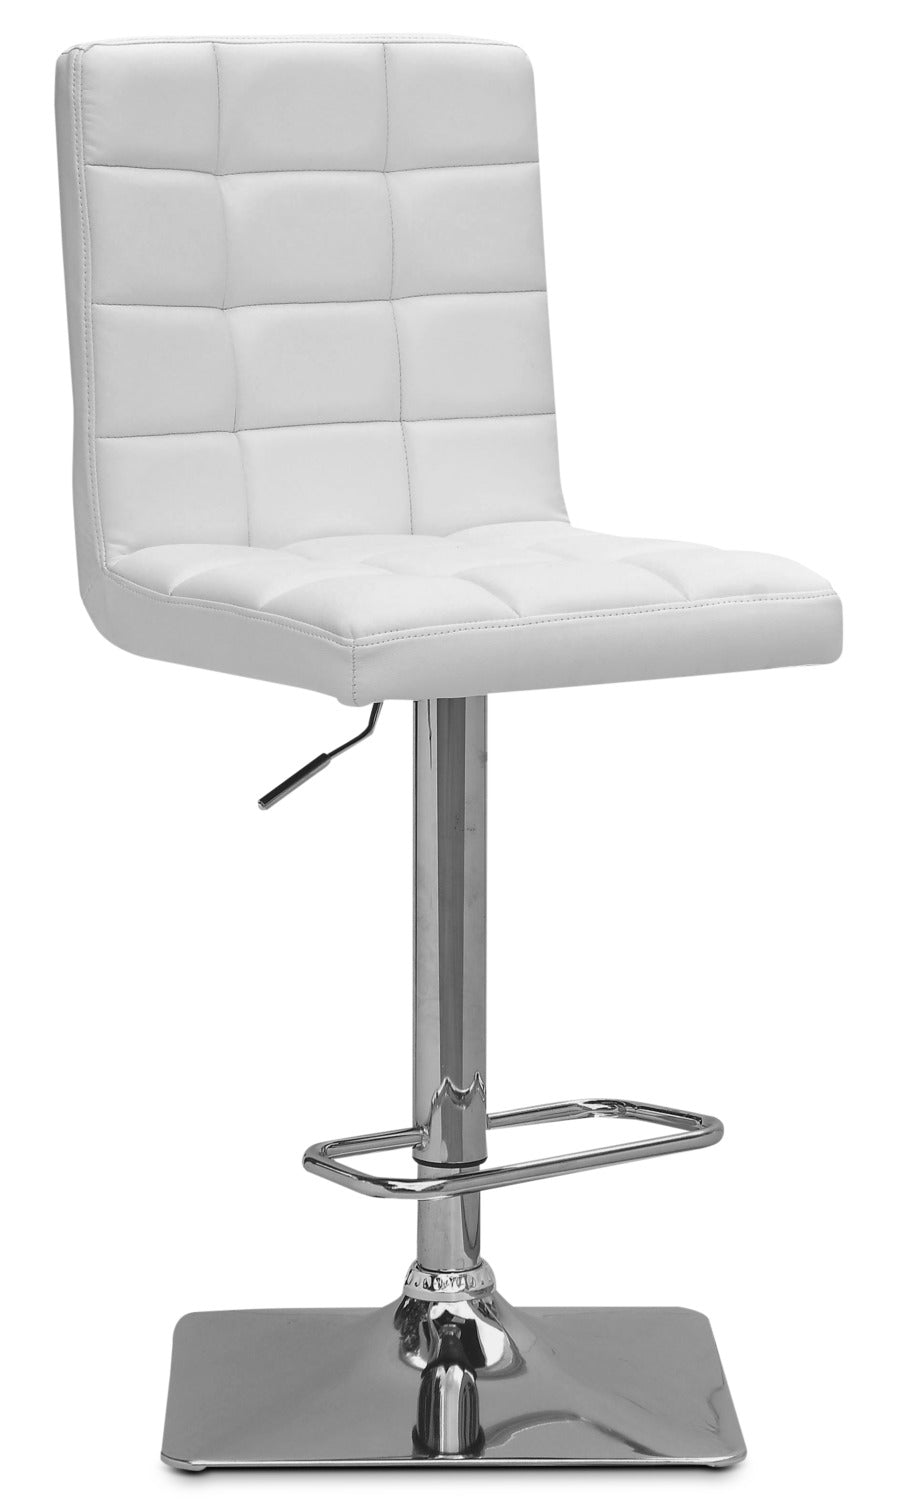 Cool Axel High Back Adjustable Bar Stool White Gamerscity Chair Design For Home Gamerscityorg